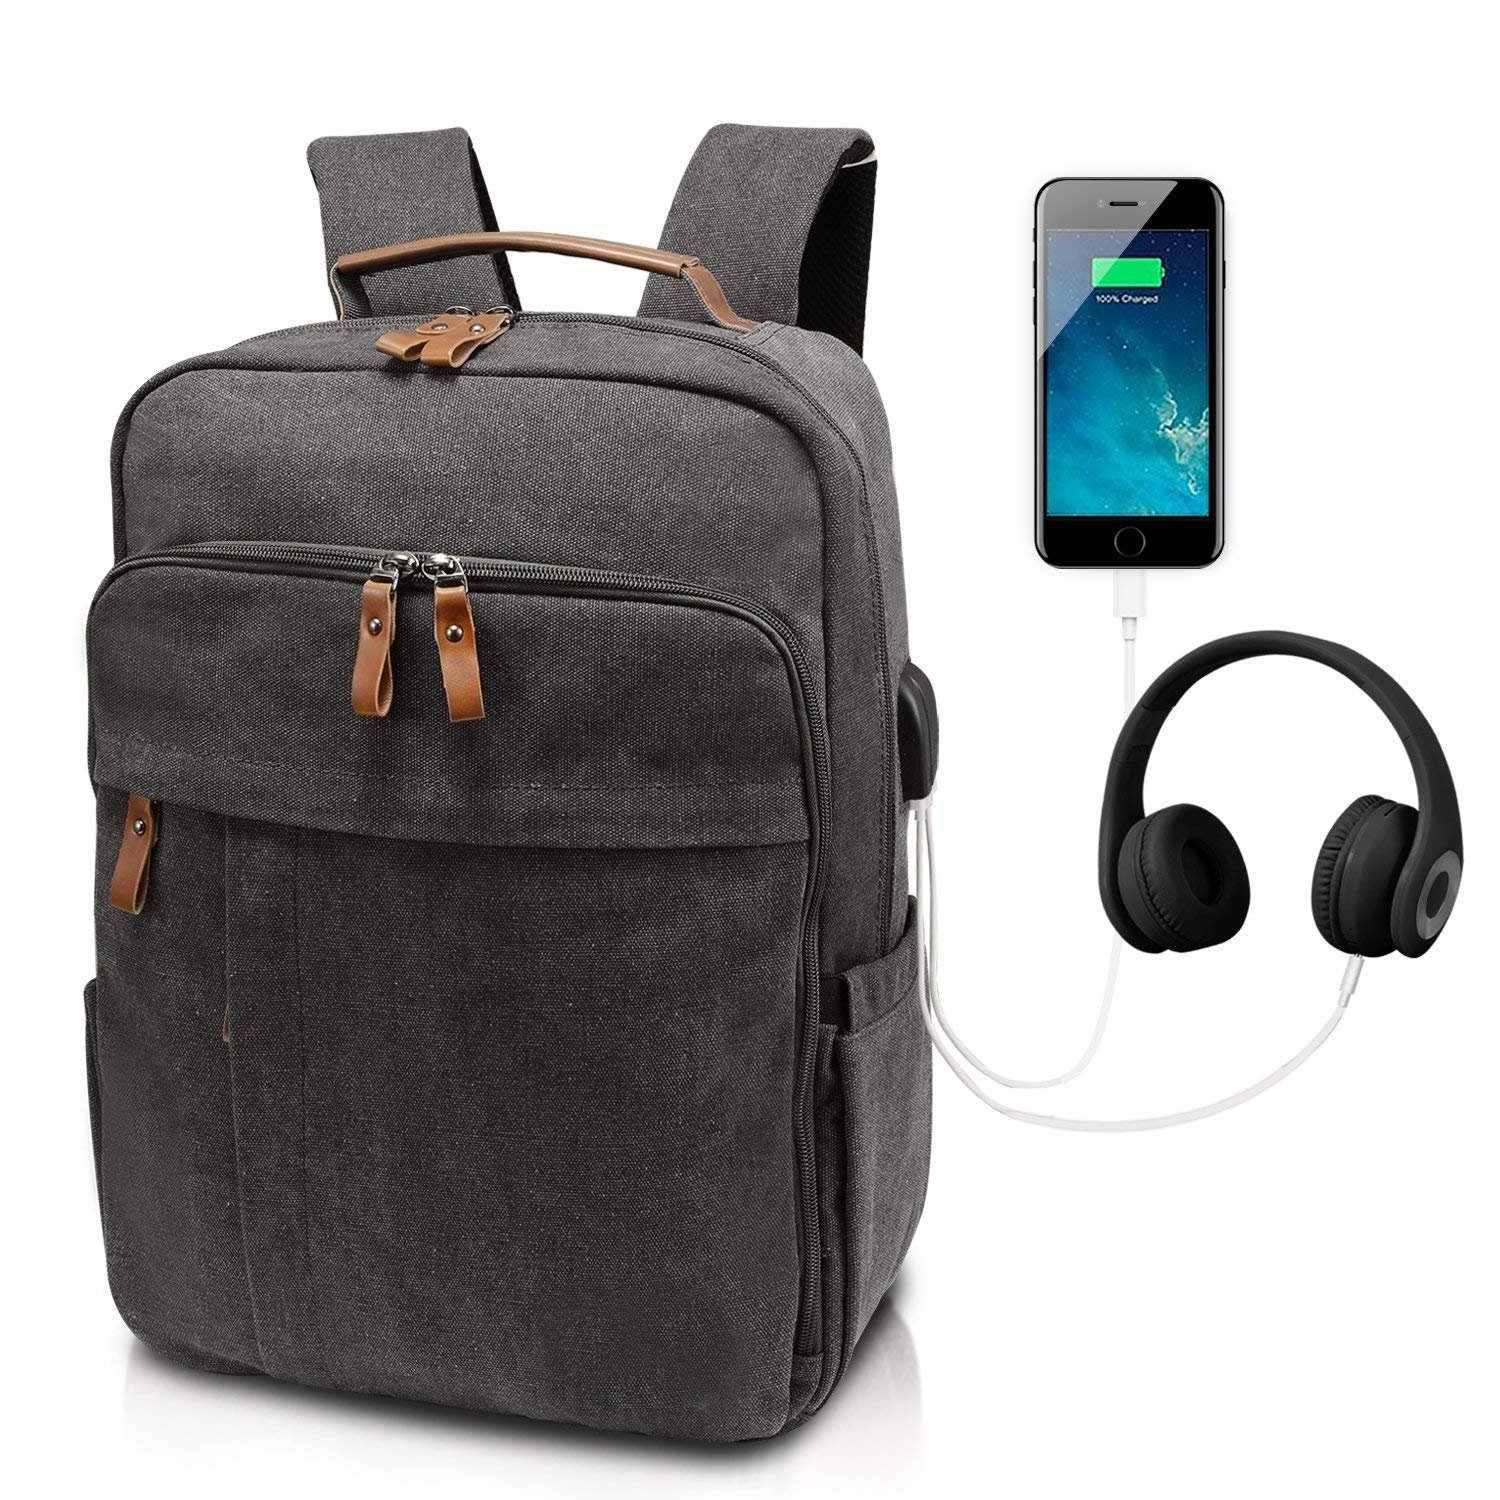 Business Laptop Backpack 15-15.6 Inch w/USB Charging Port Water-Resistant Canvas Backpack for Work College School Travel